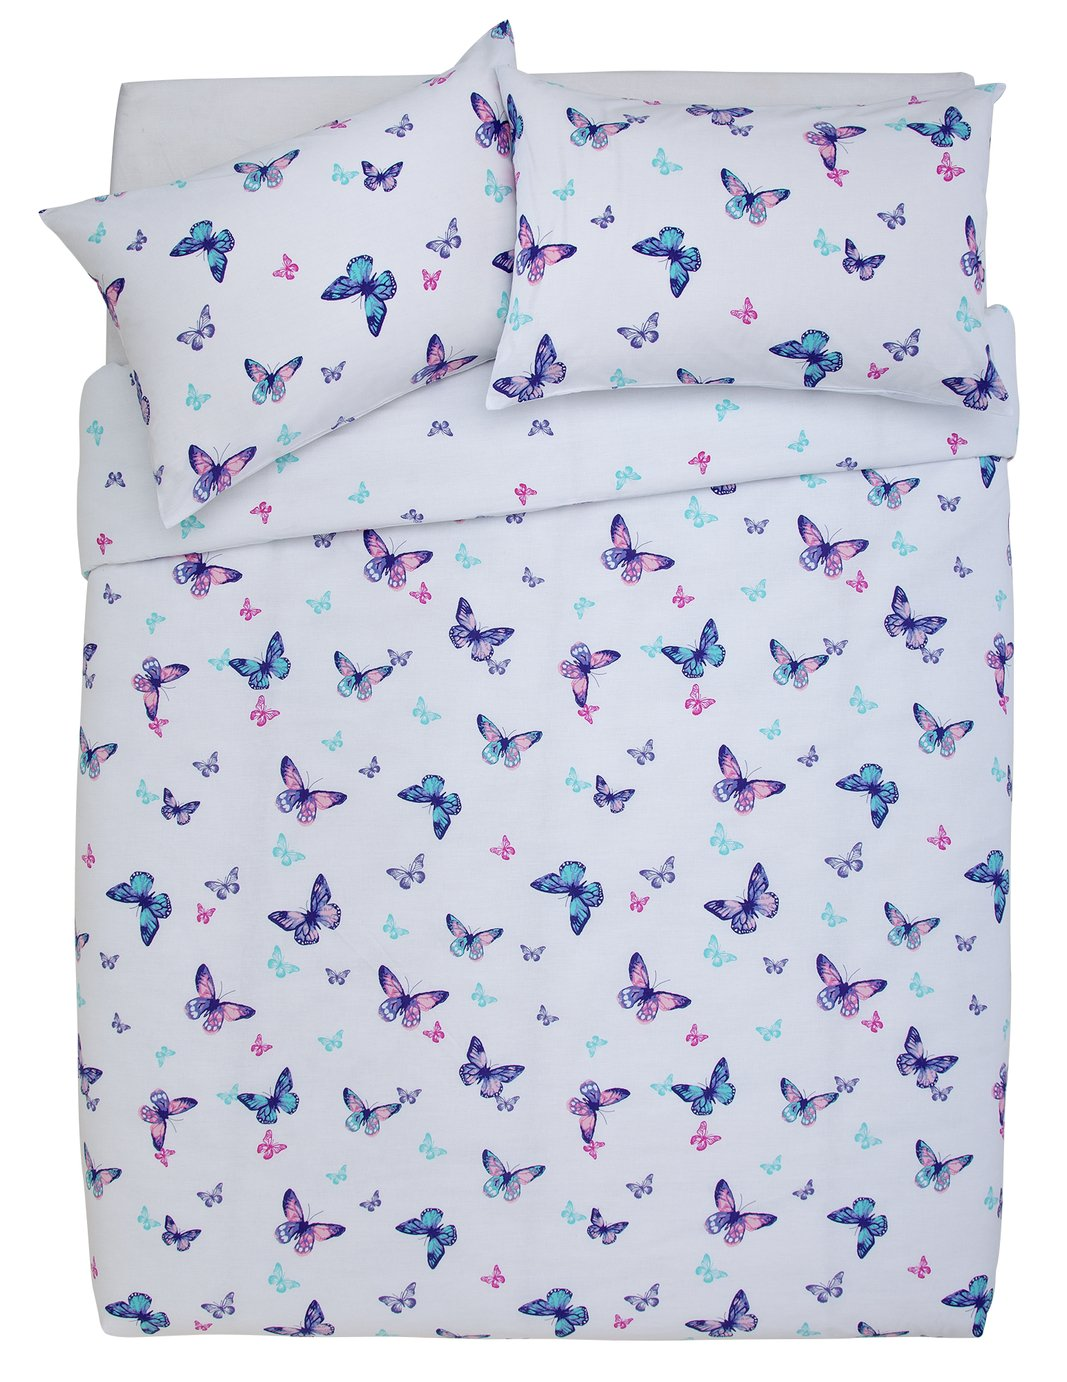 Argos Home Butterfly Bedding Set - Kingsize